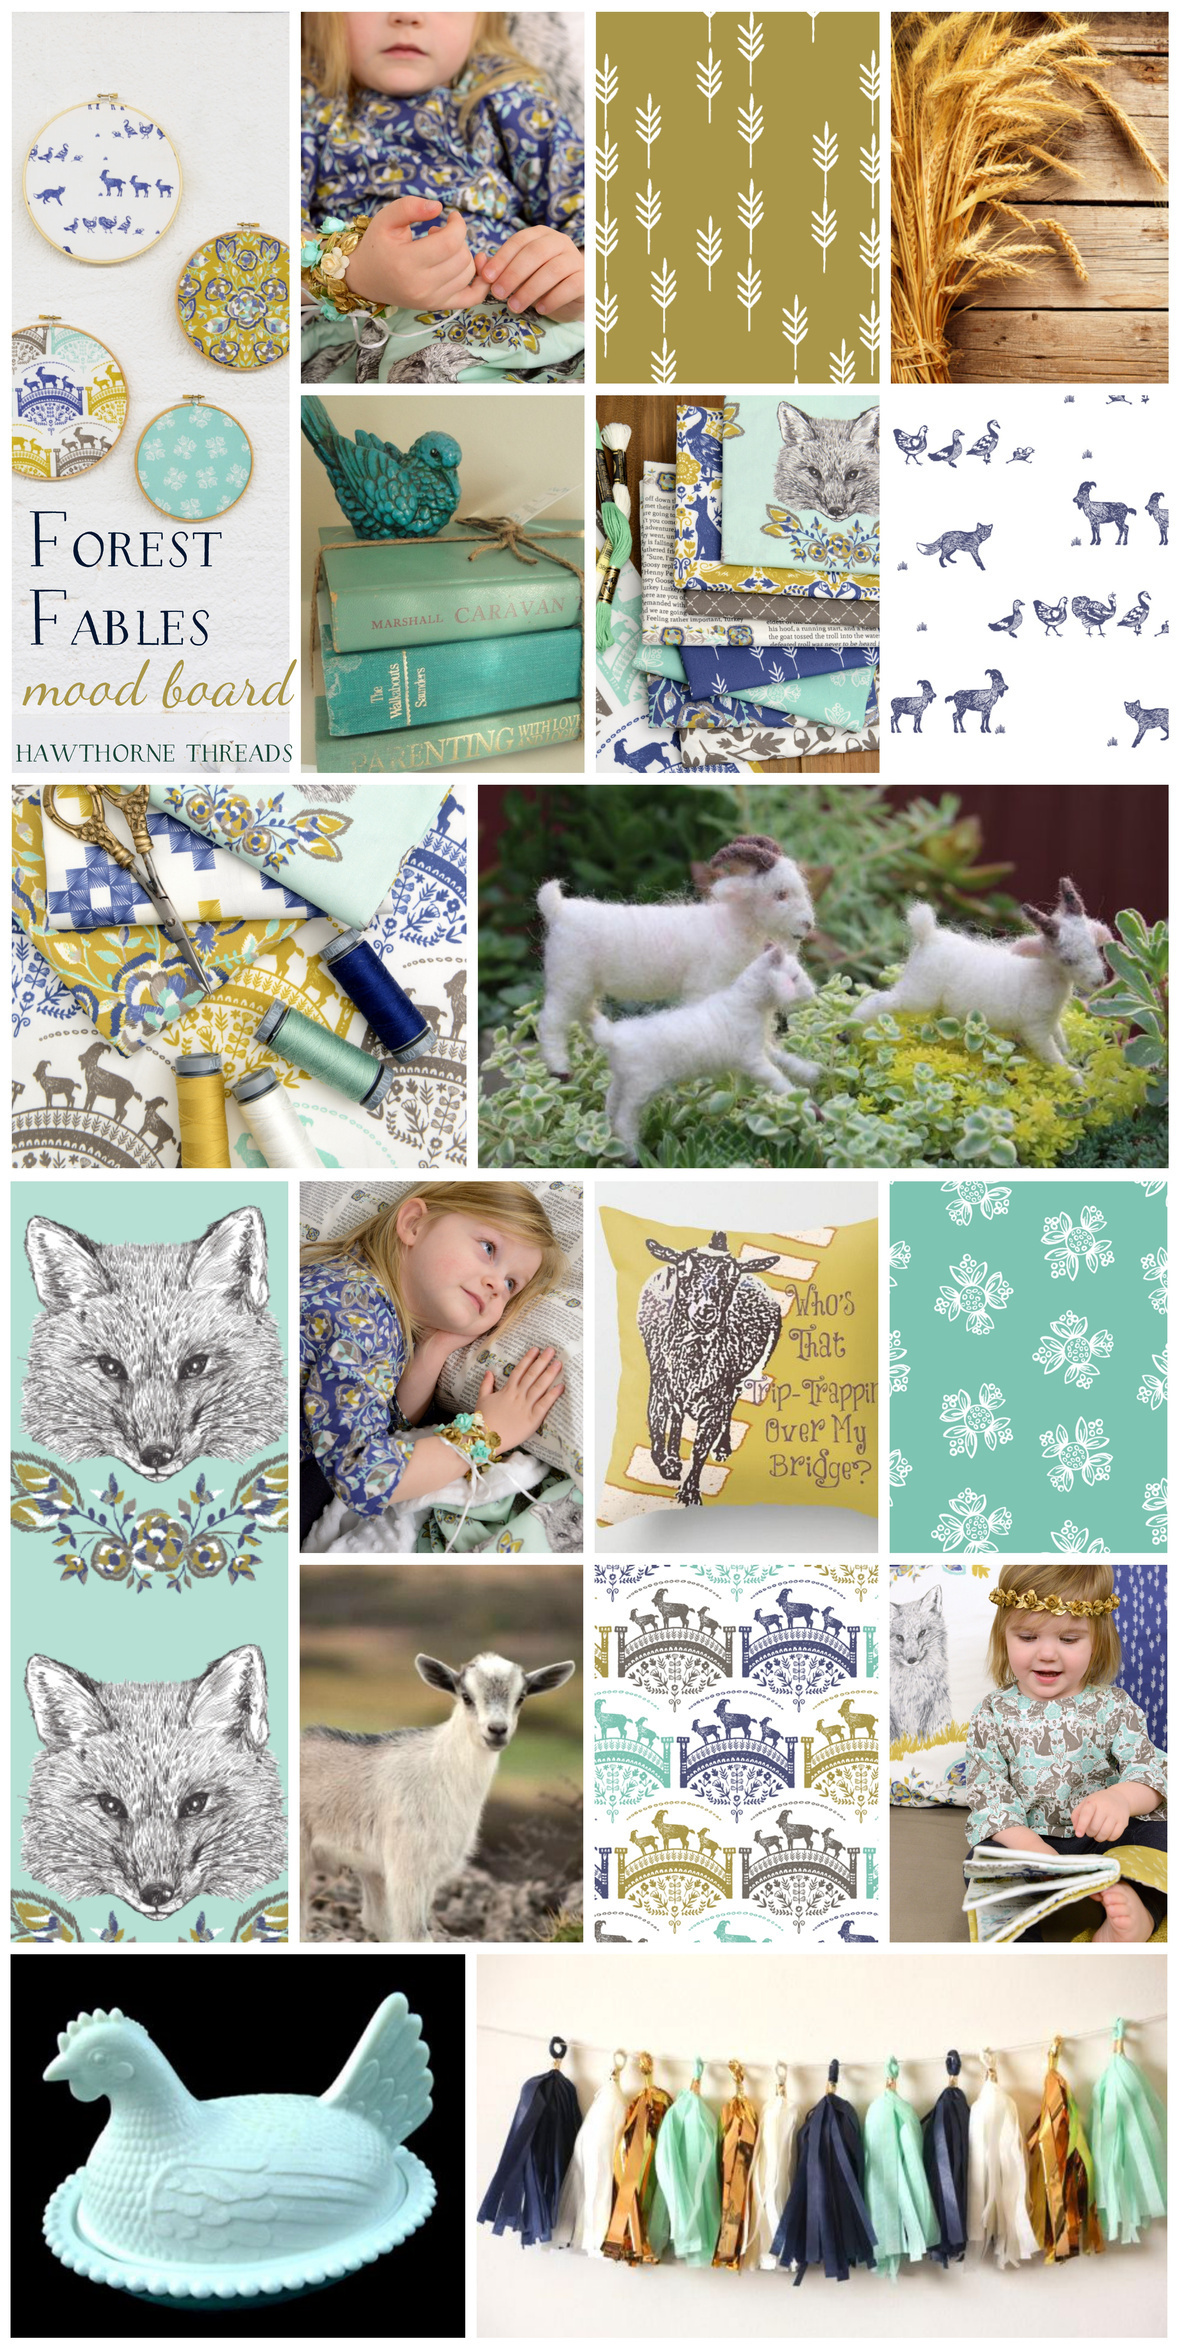 Forest Fables Fabric Mood Board in Glade.png